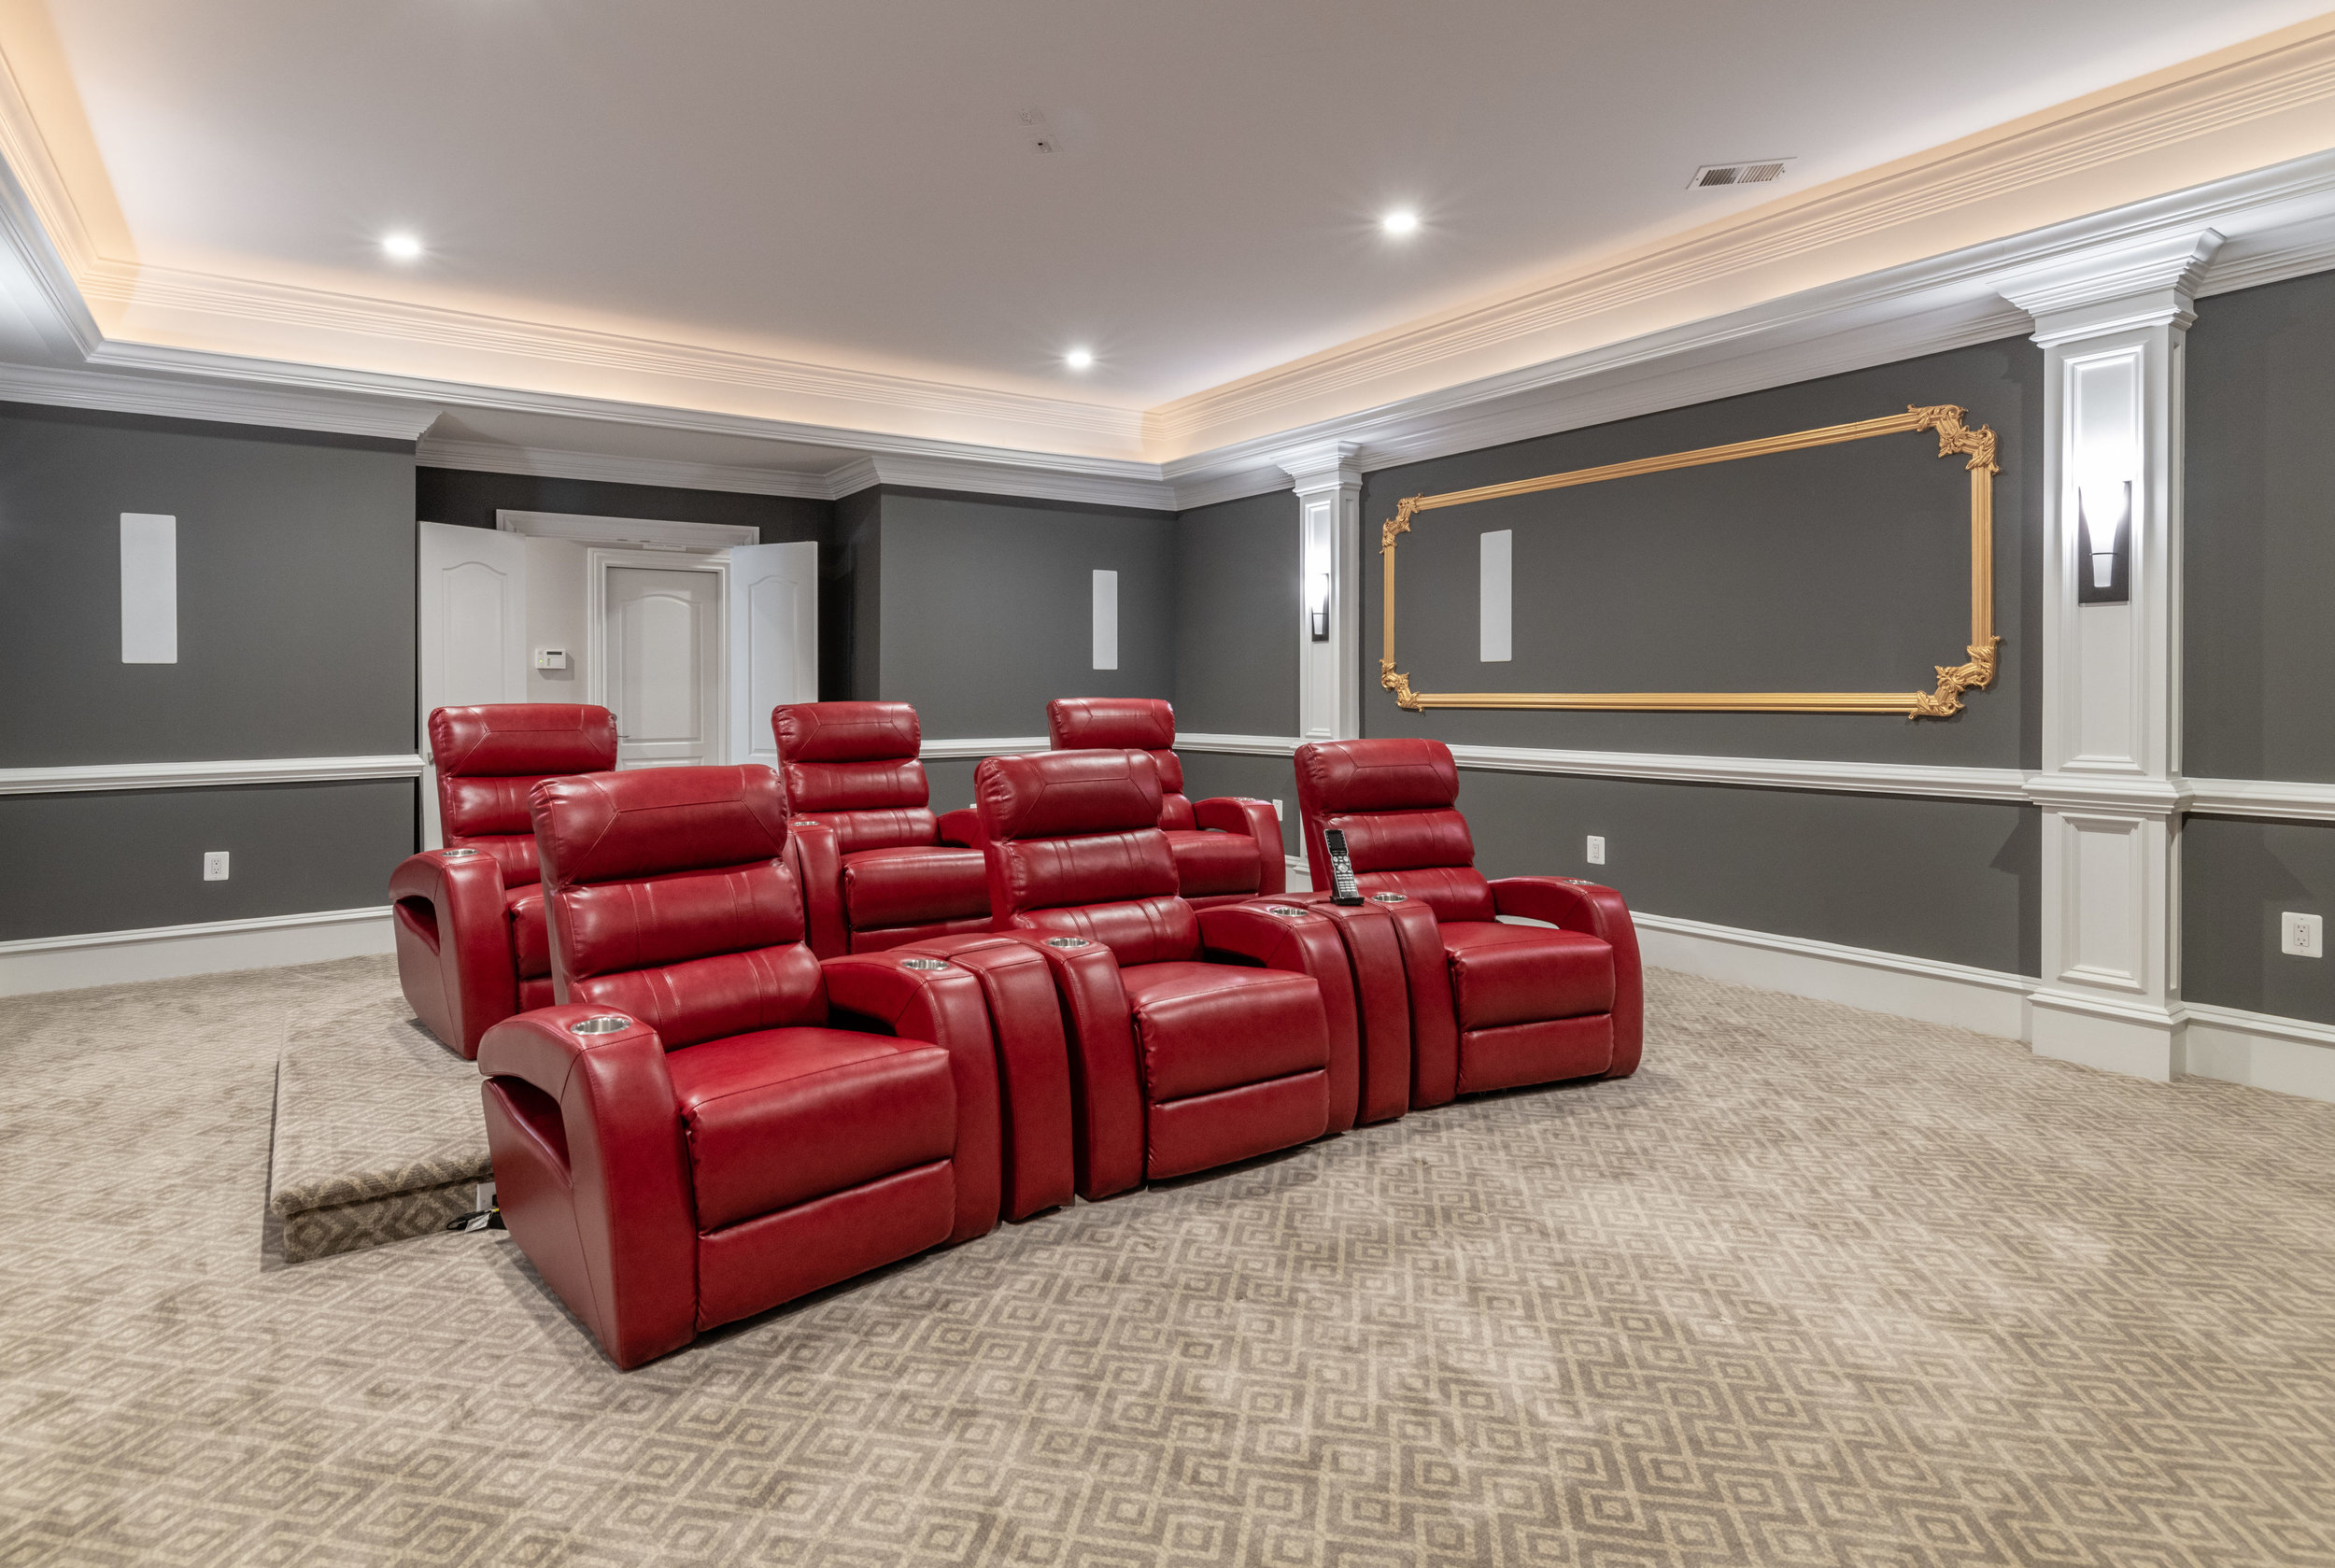 Six Power Recliners Convey